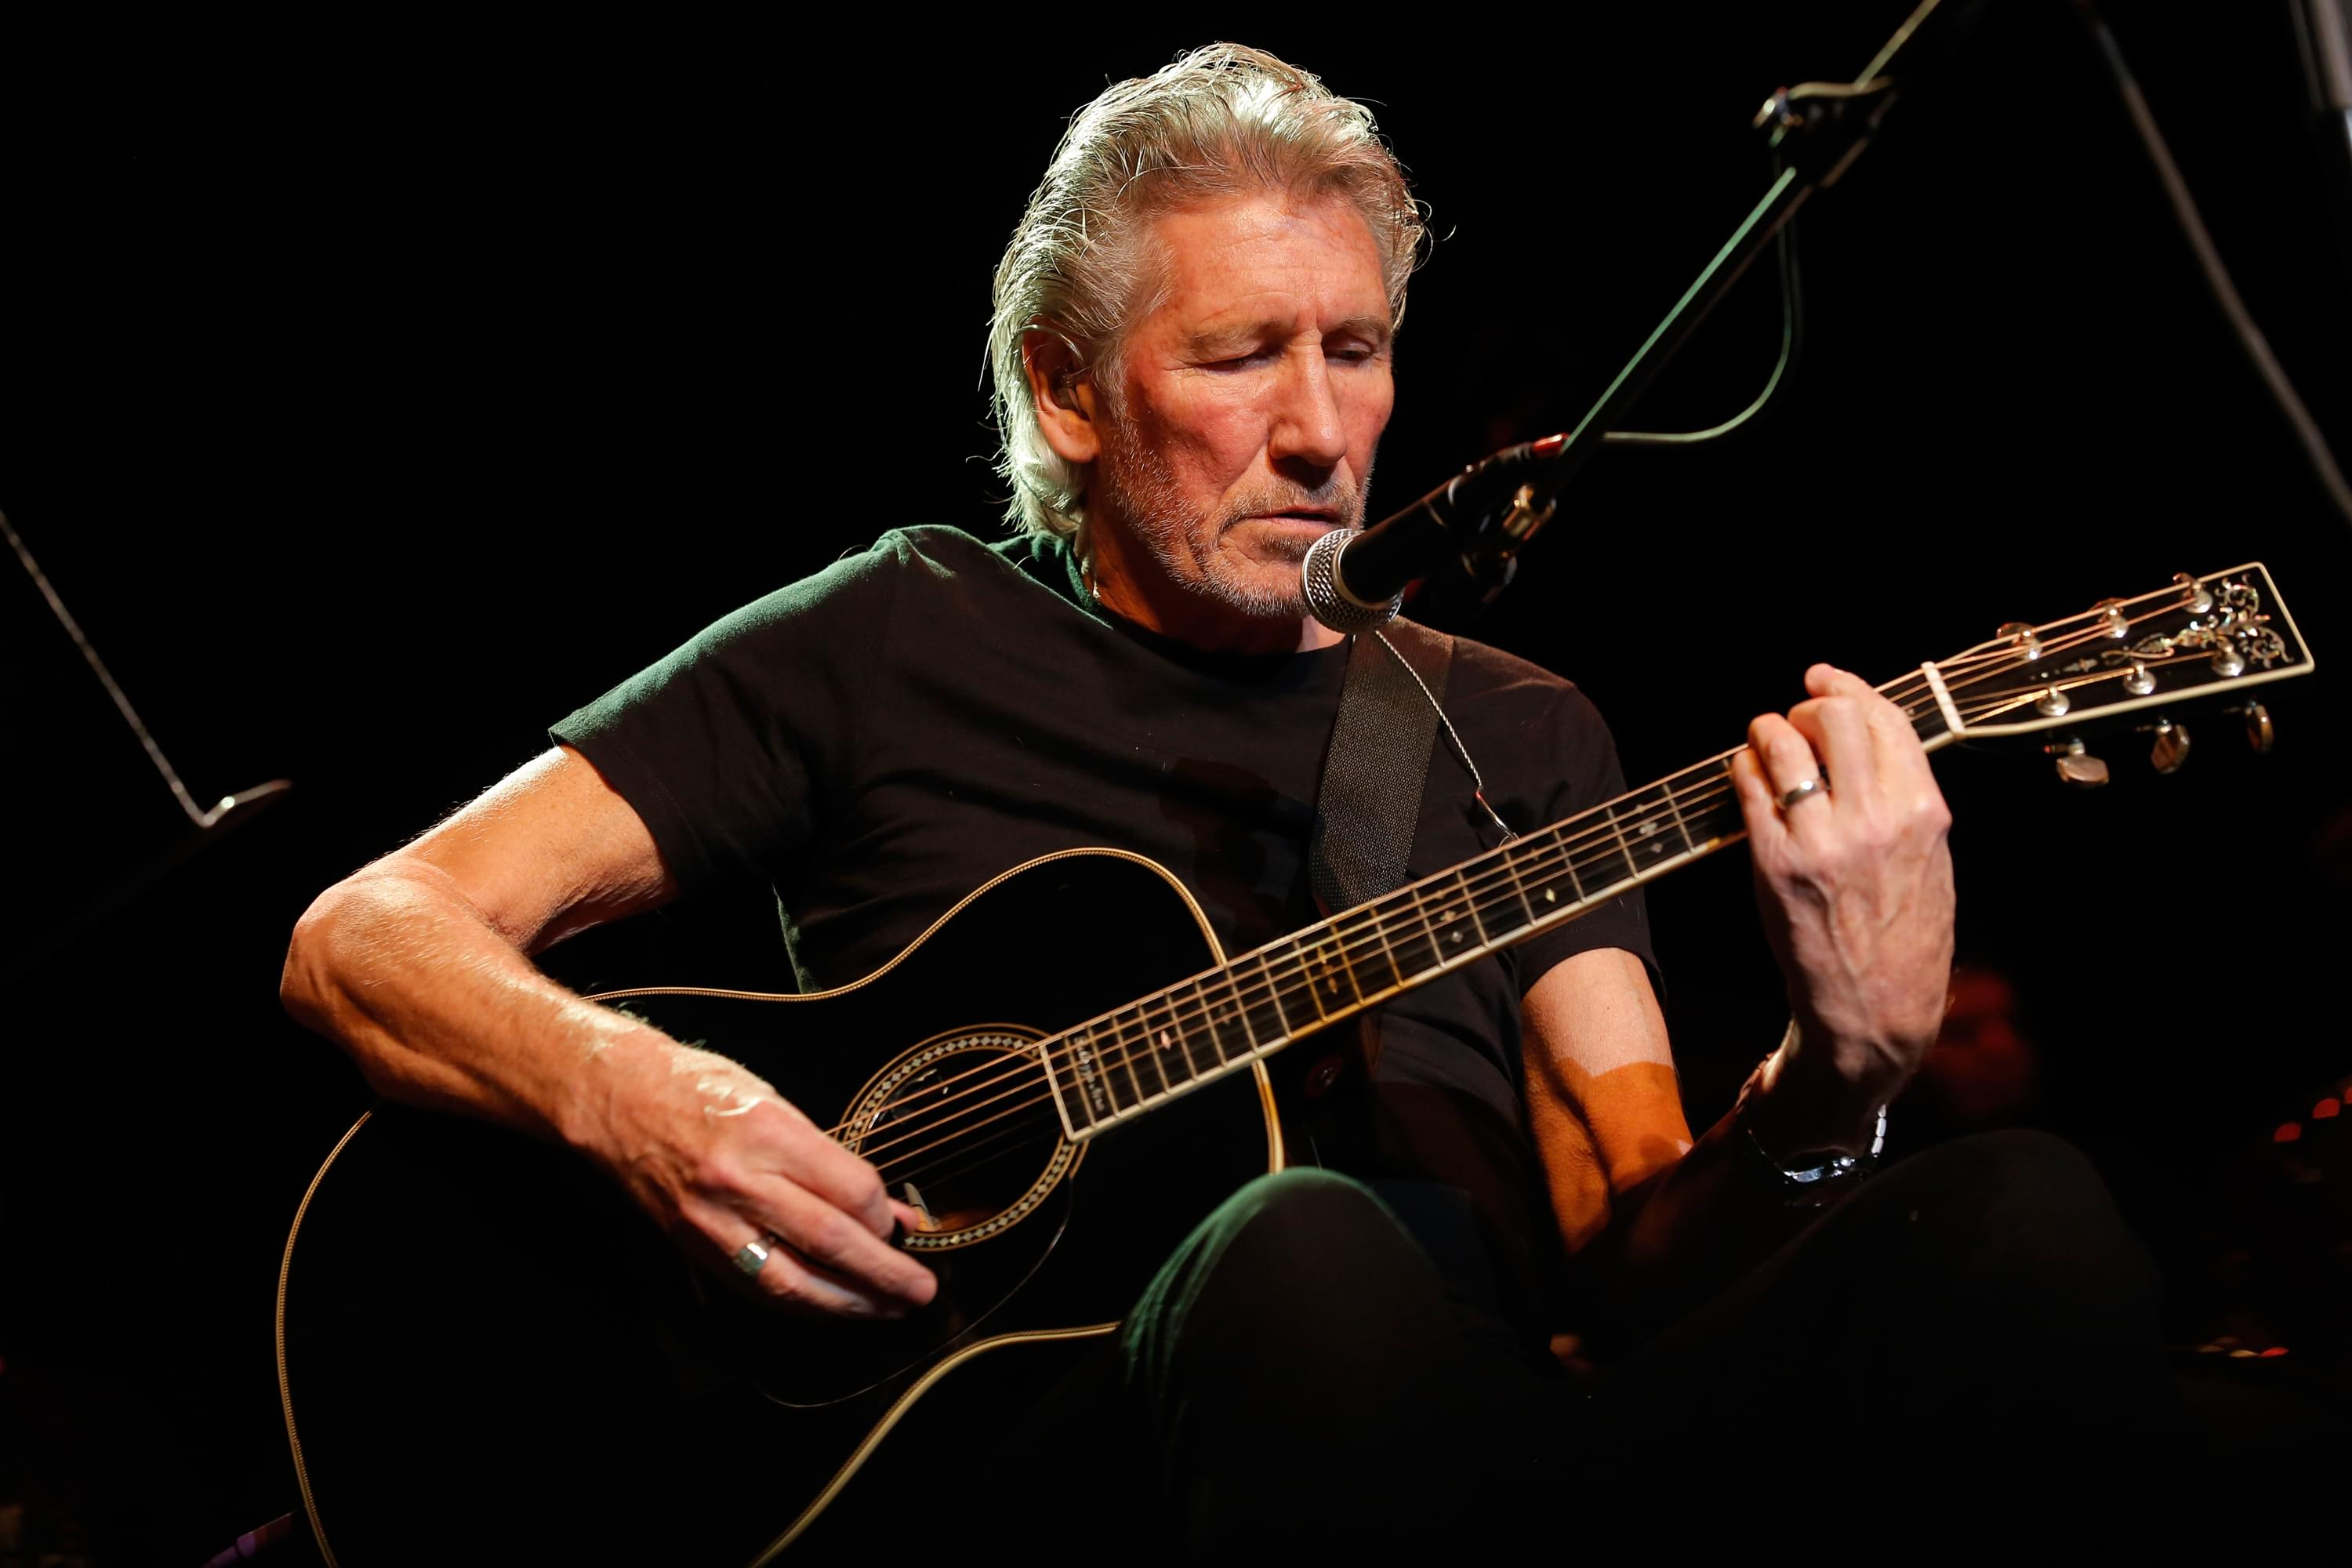 Roger Waters 'Us + Them' concert film set for June 16th release